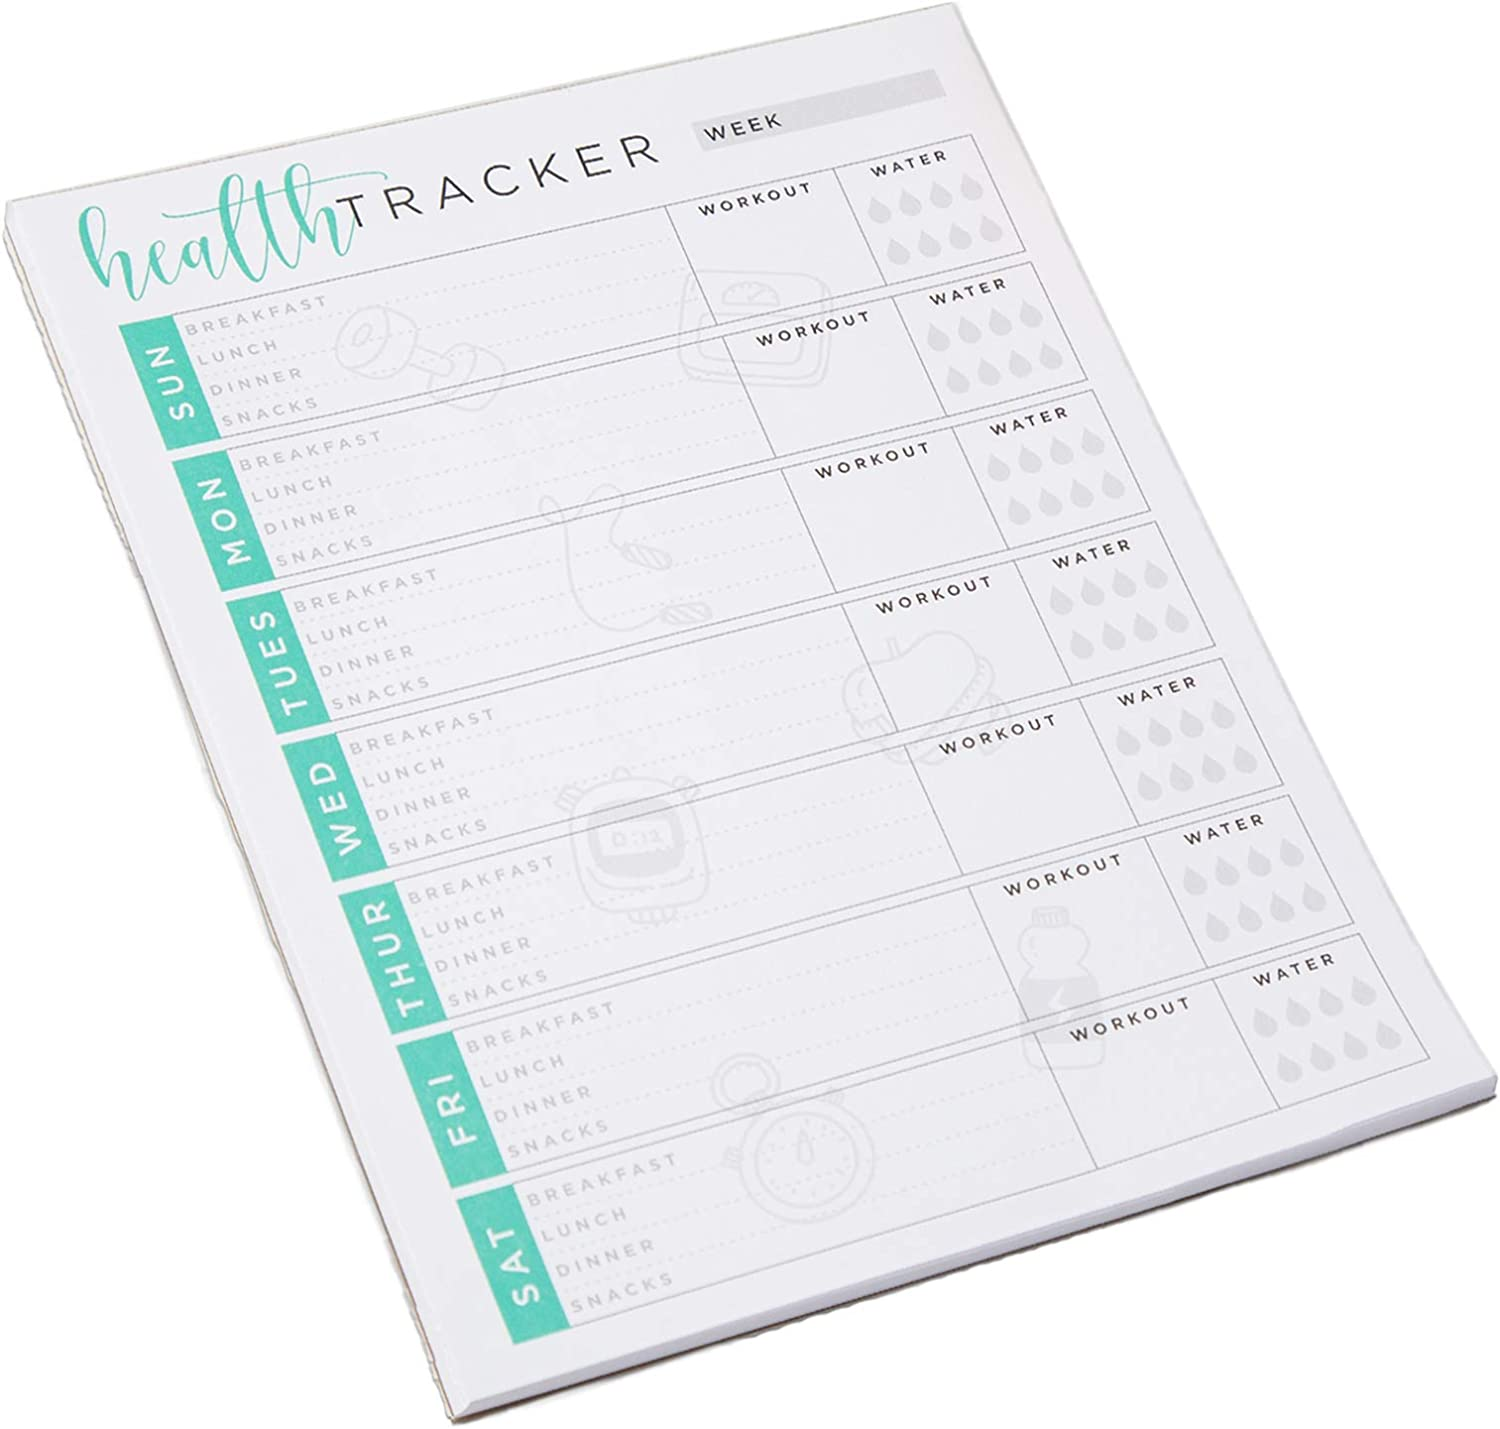 Tiny Expressions - Weekly Health & Wellness Tracker Journal (8.5